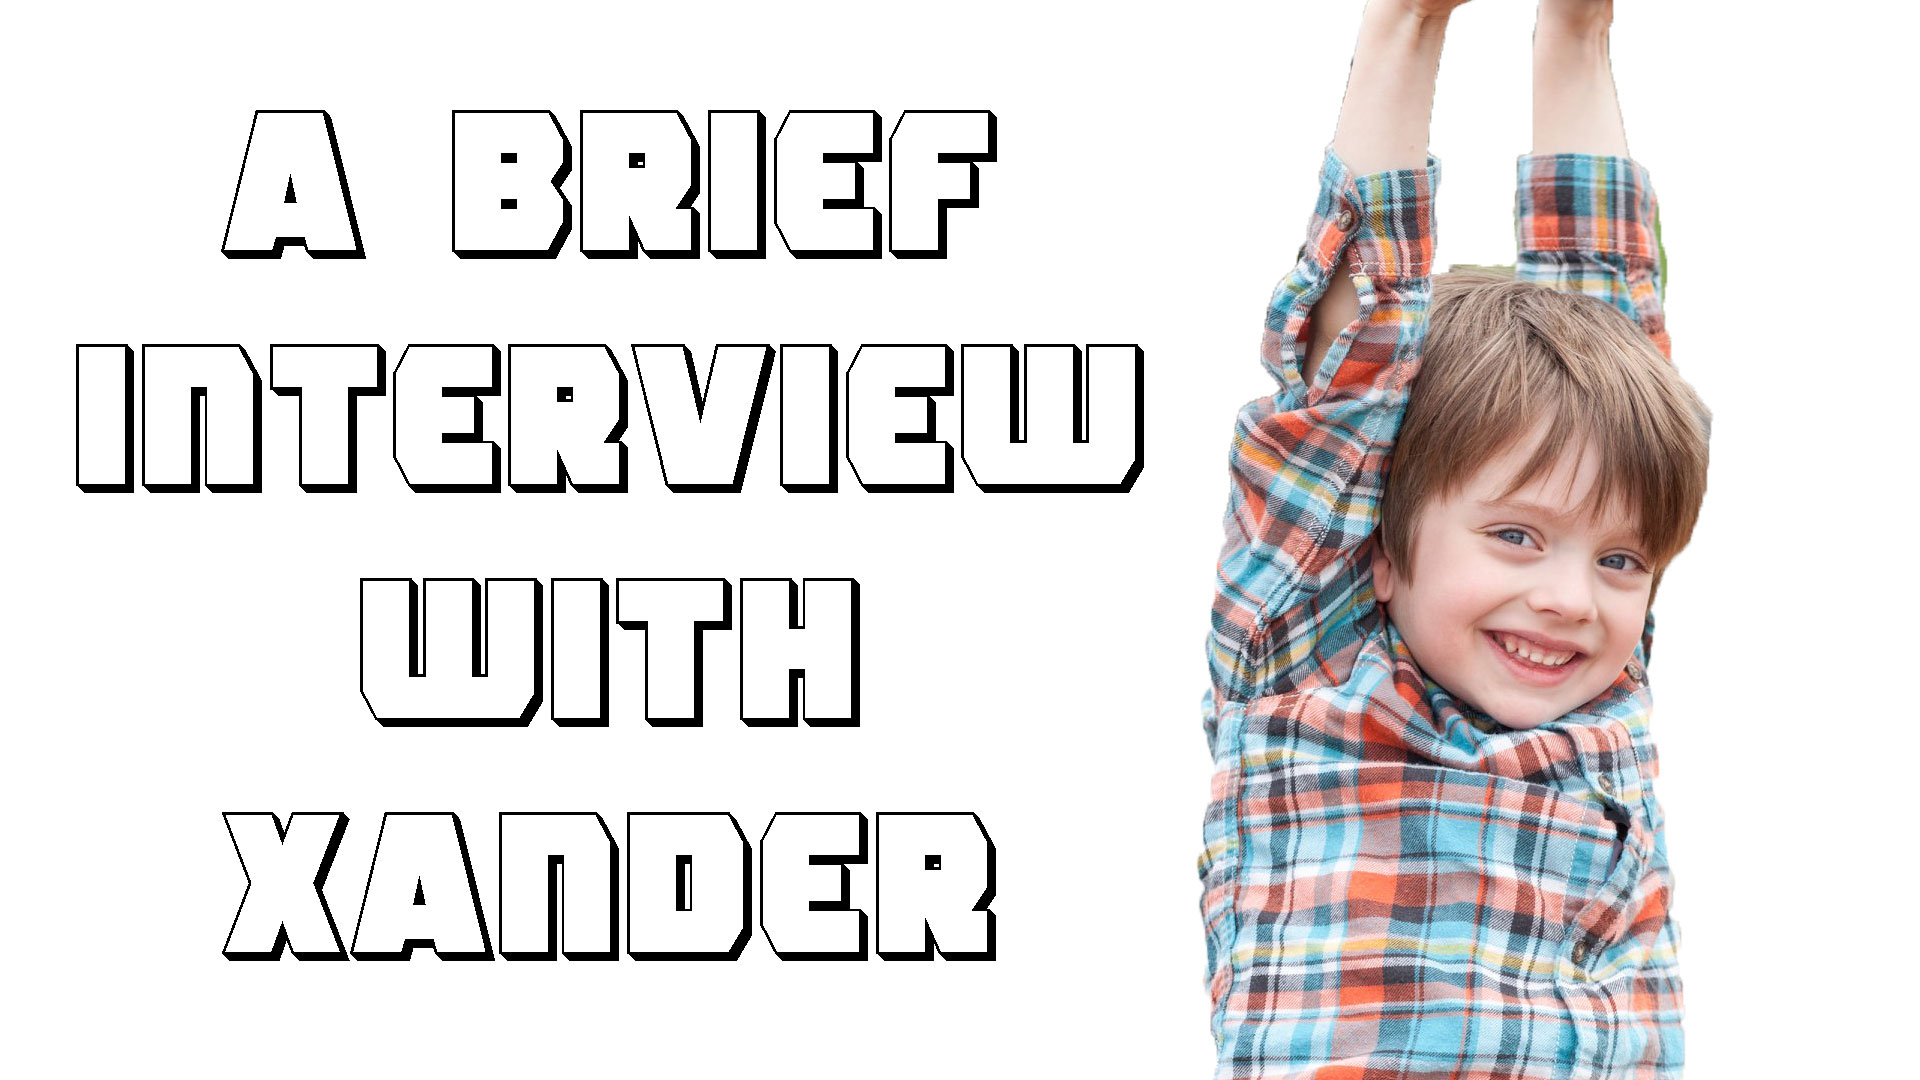 Ep. 115 - A Brief Interview with Xander.jpg